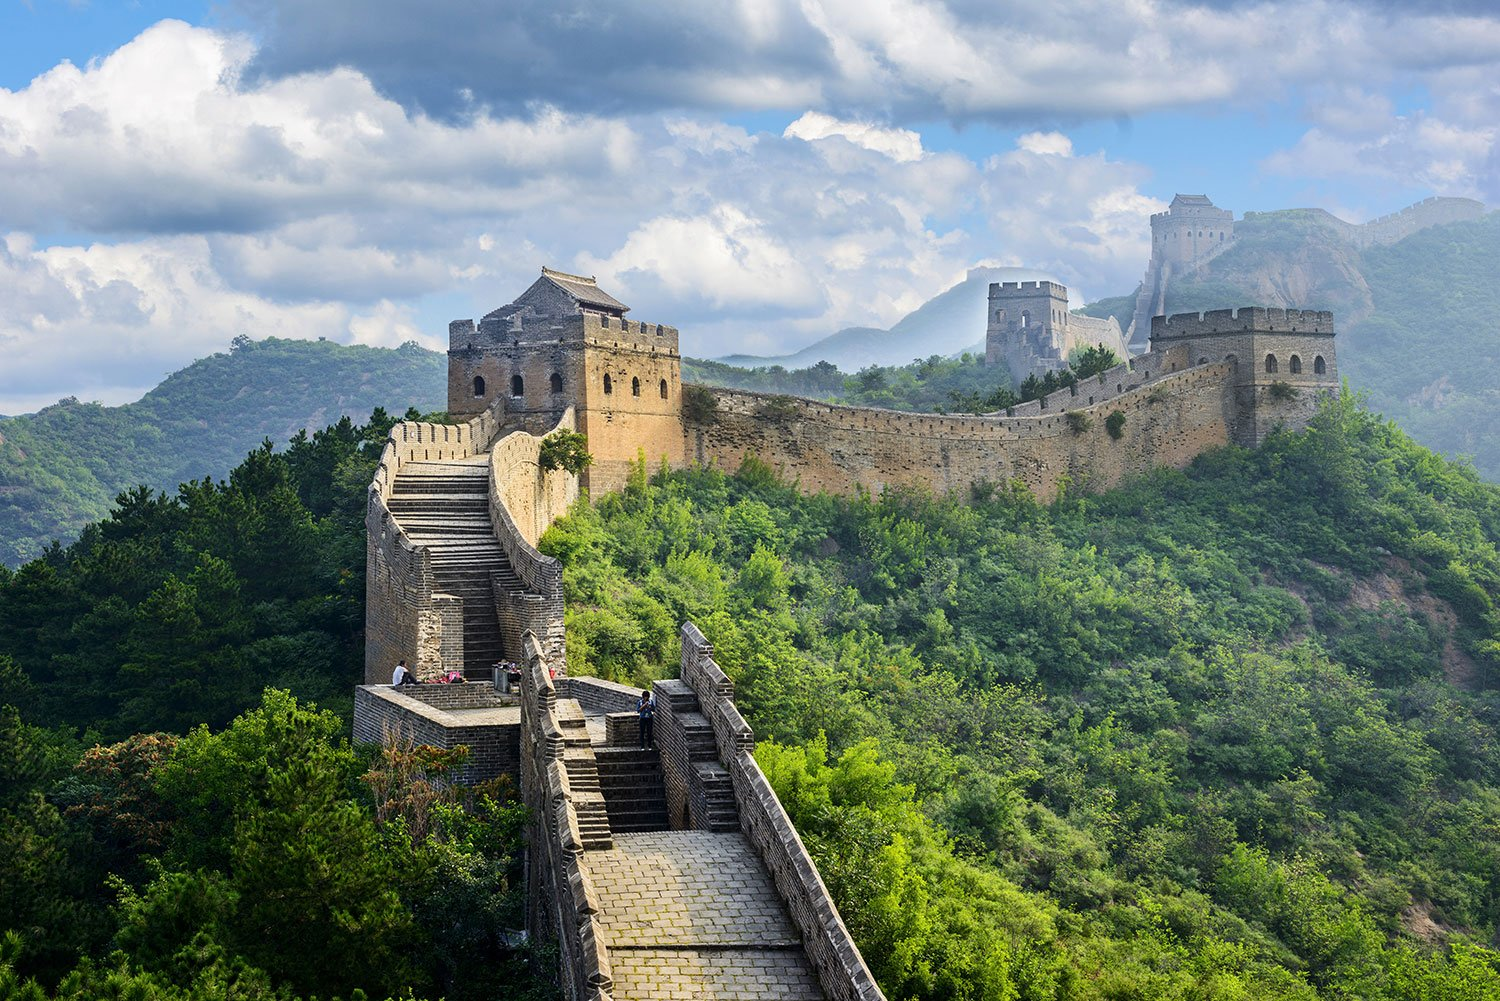 Great Wall of China on top of mountains with dense foliage